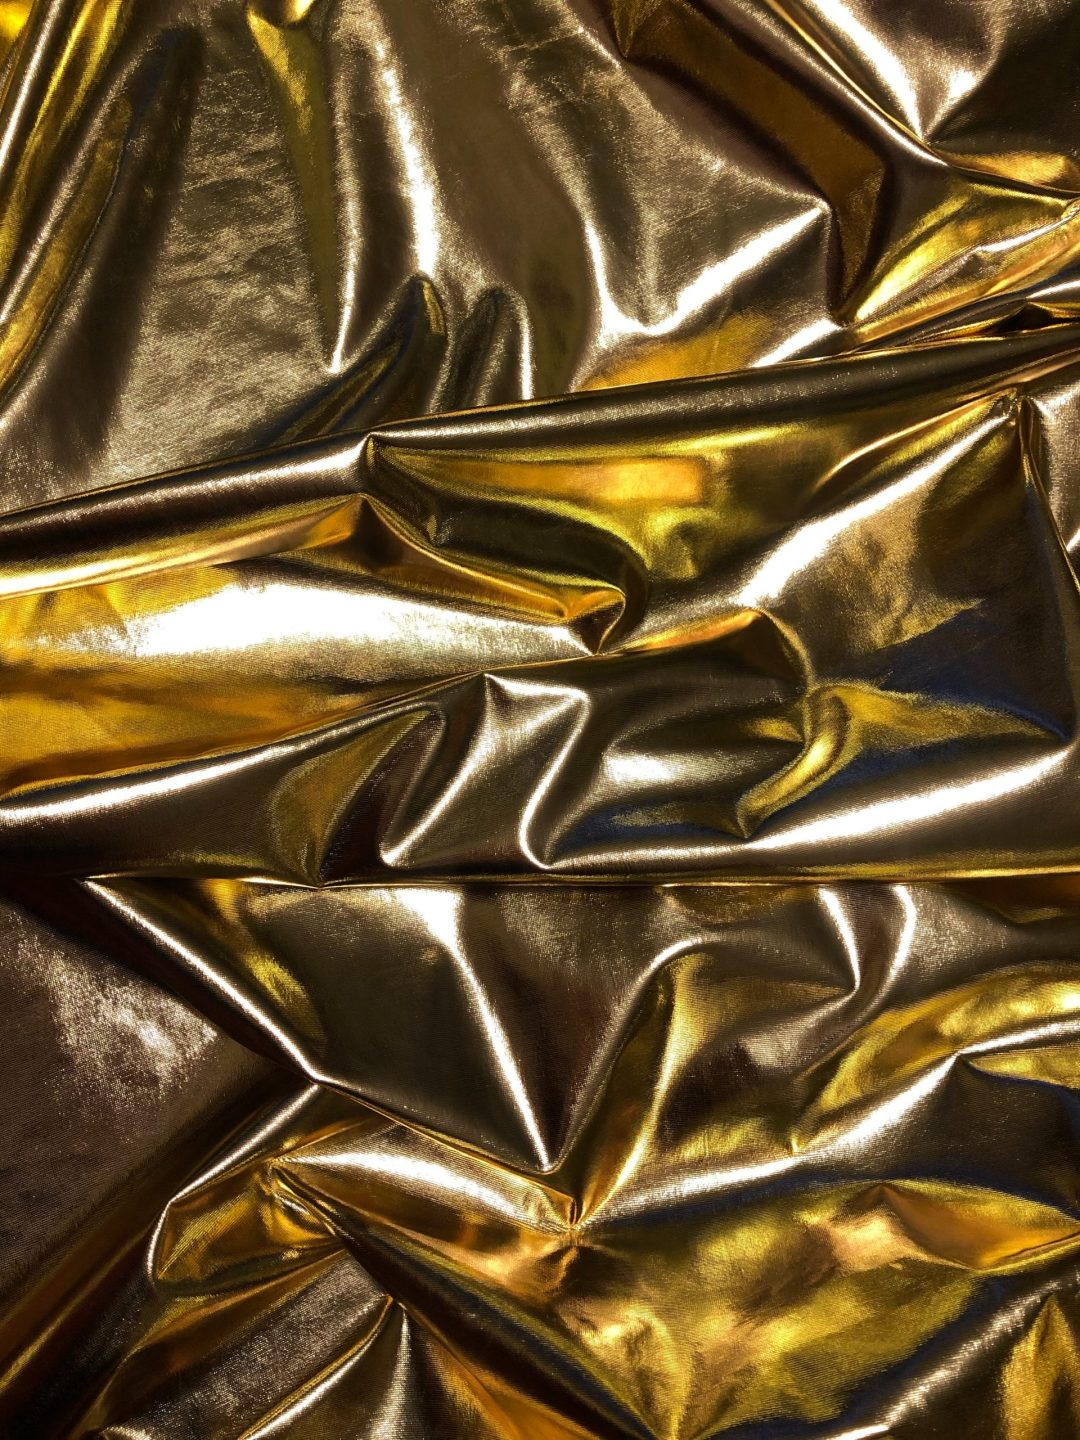 Gold foil fabric bunched up